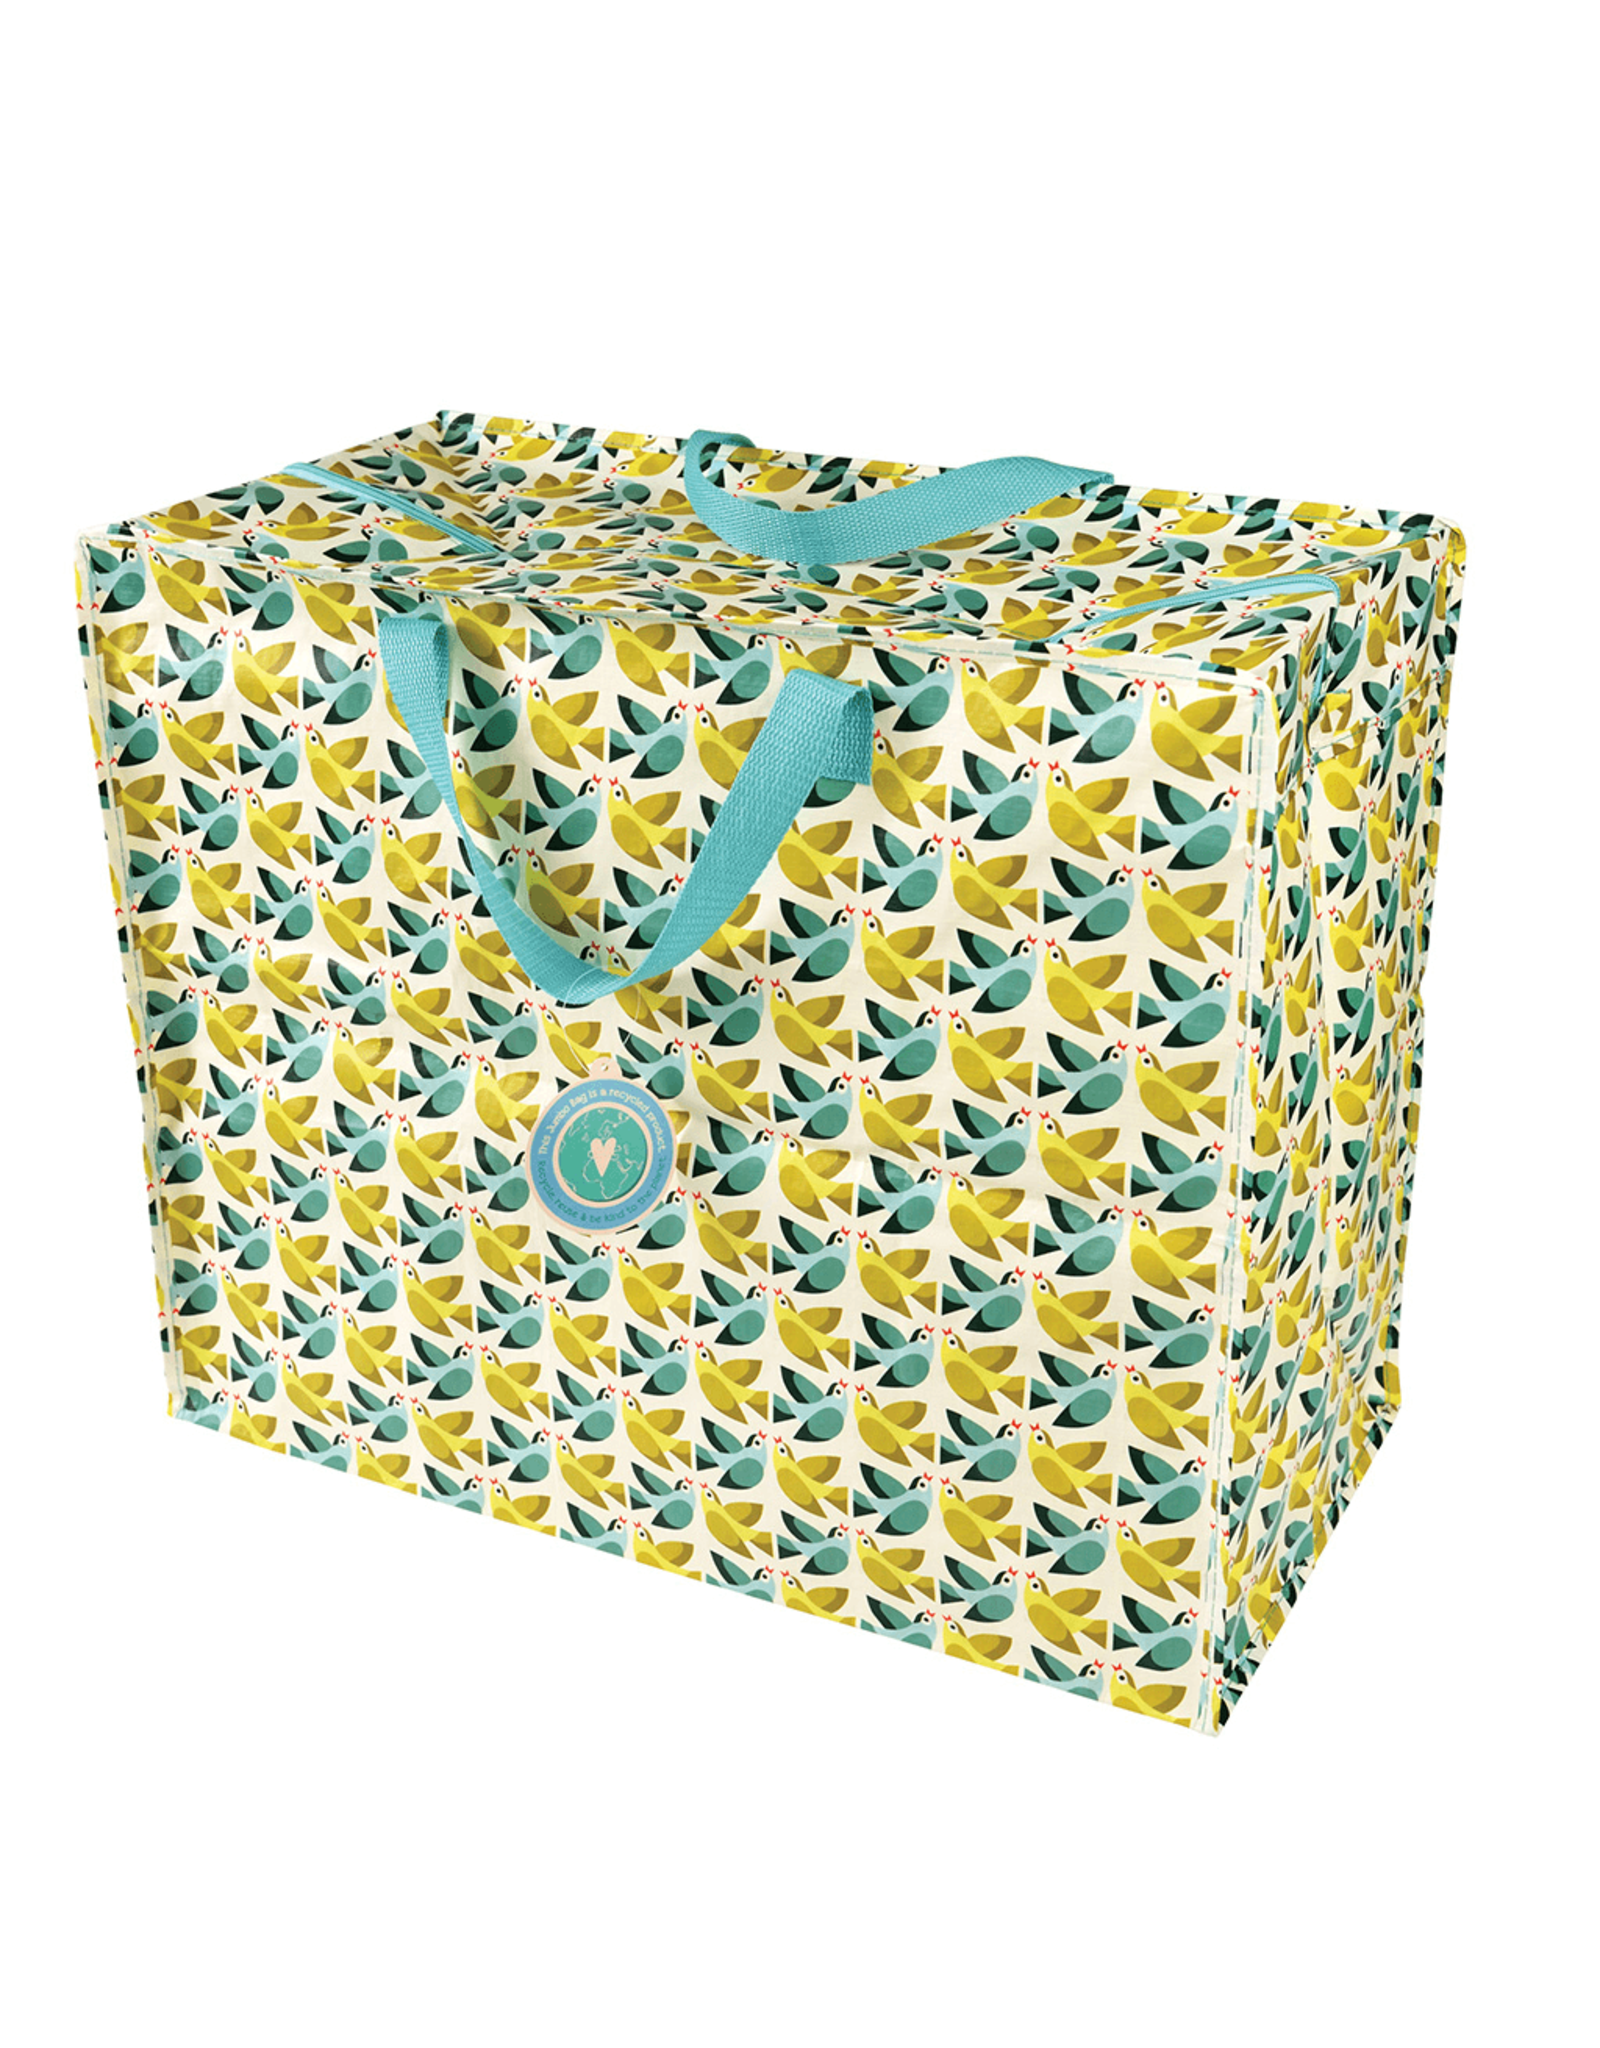 REX London Jumbo Storage Bag, Love Birds